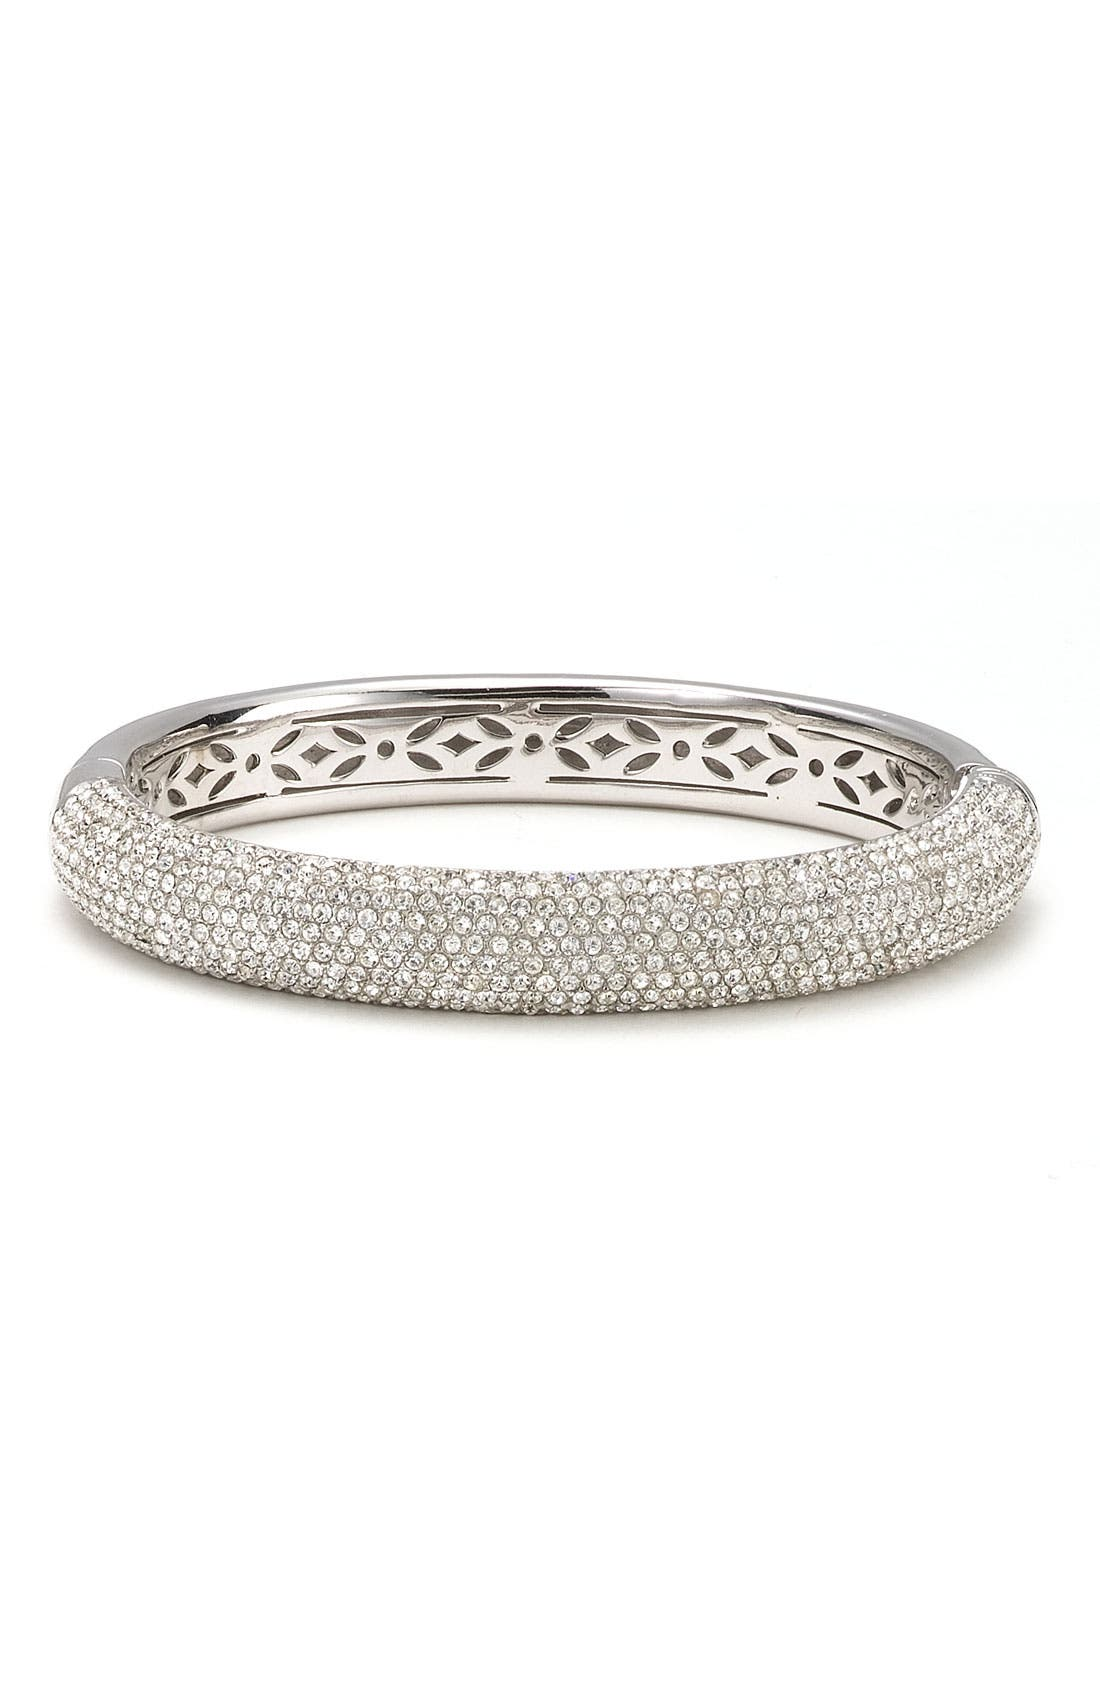 Alternate Image 1 Selected - Nadri 'Micro' Medium Pavé Crystal Bangle